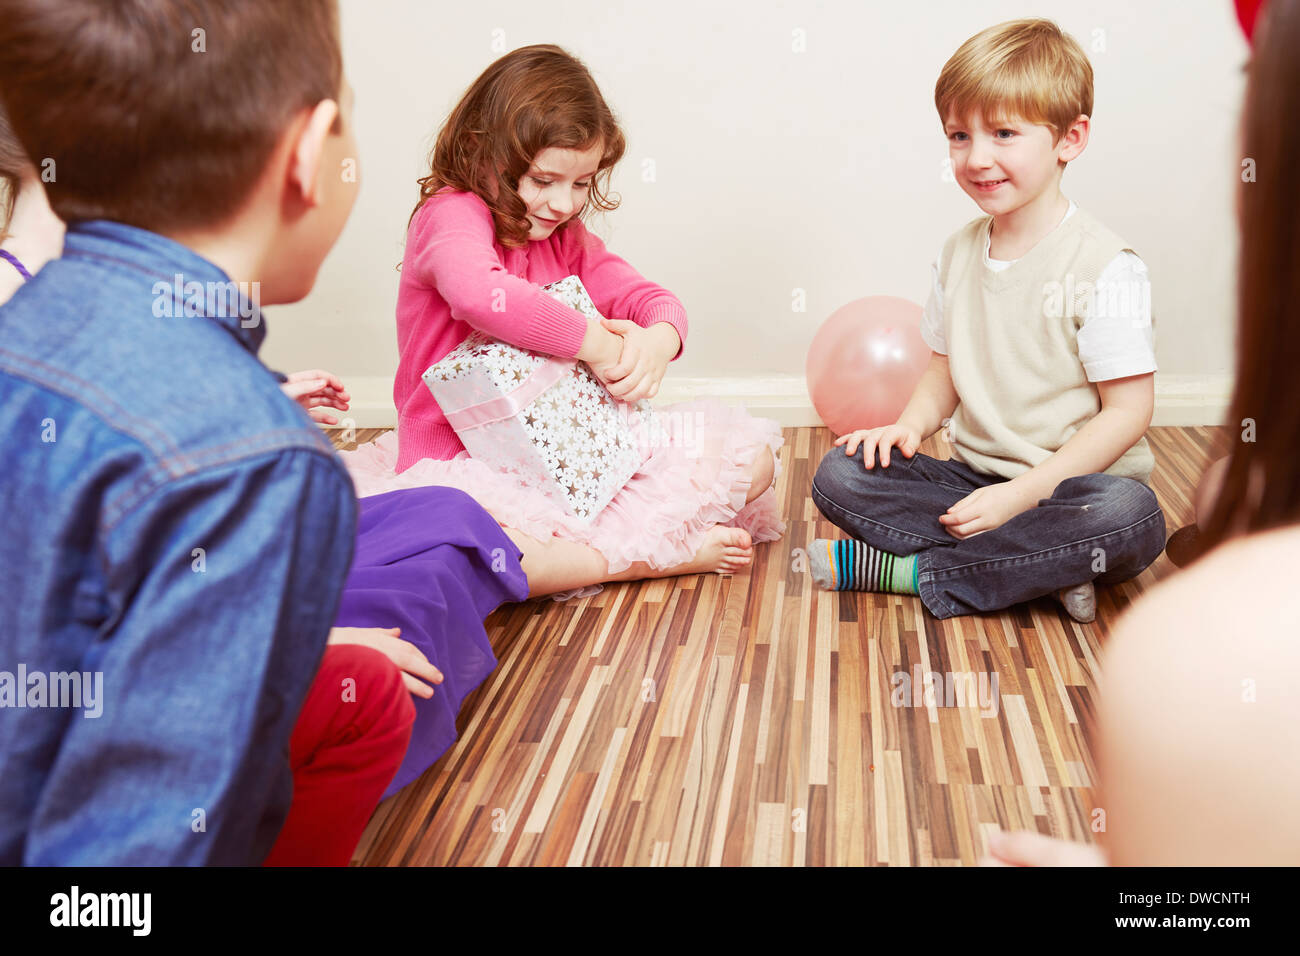 Children at party, girl holding birthday present - Stock Image